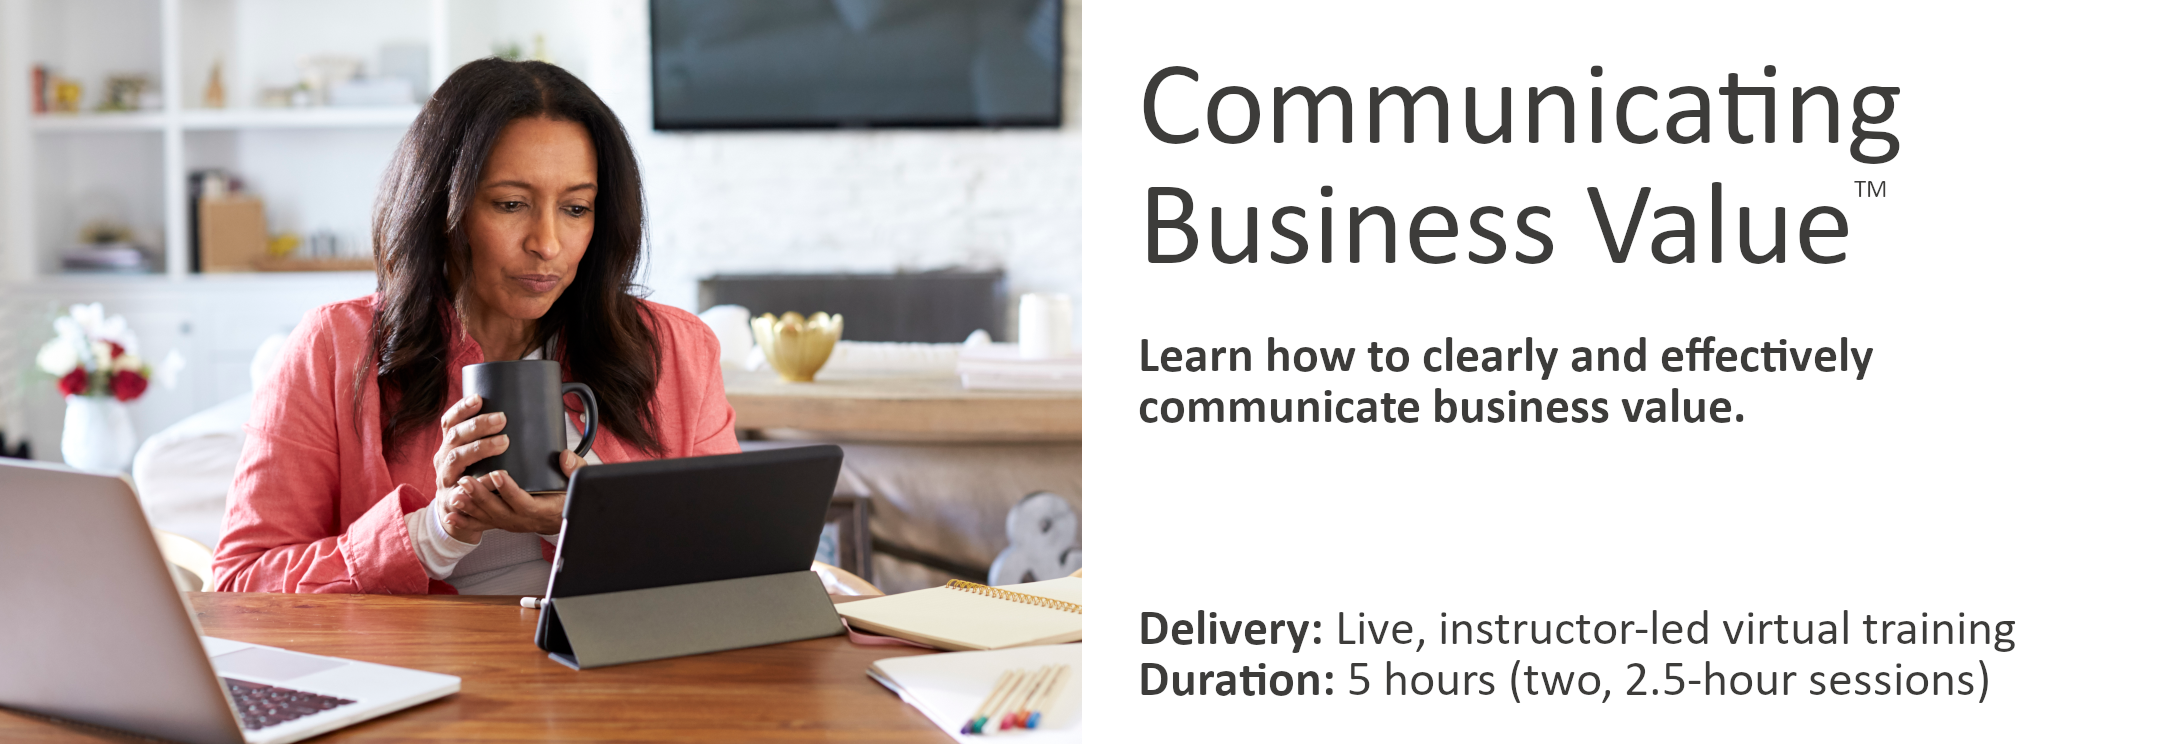 Communicating Business Value